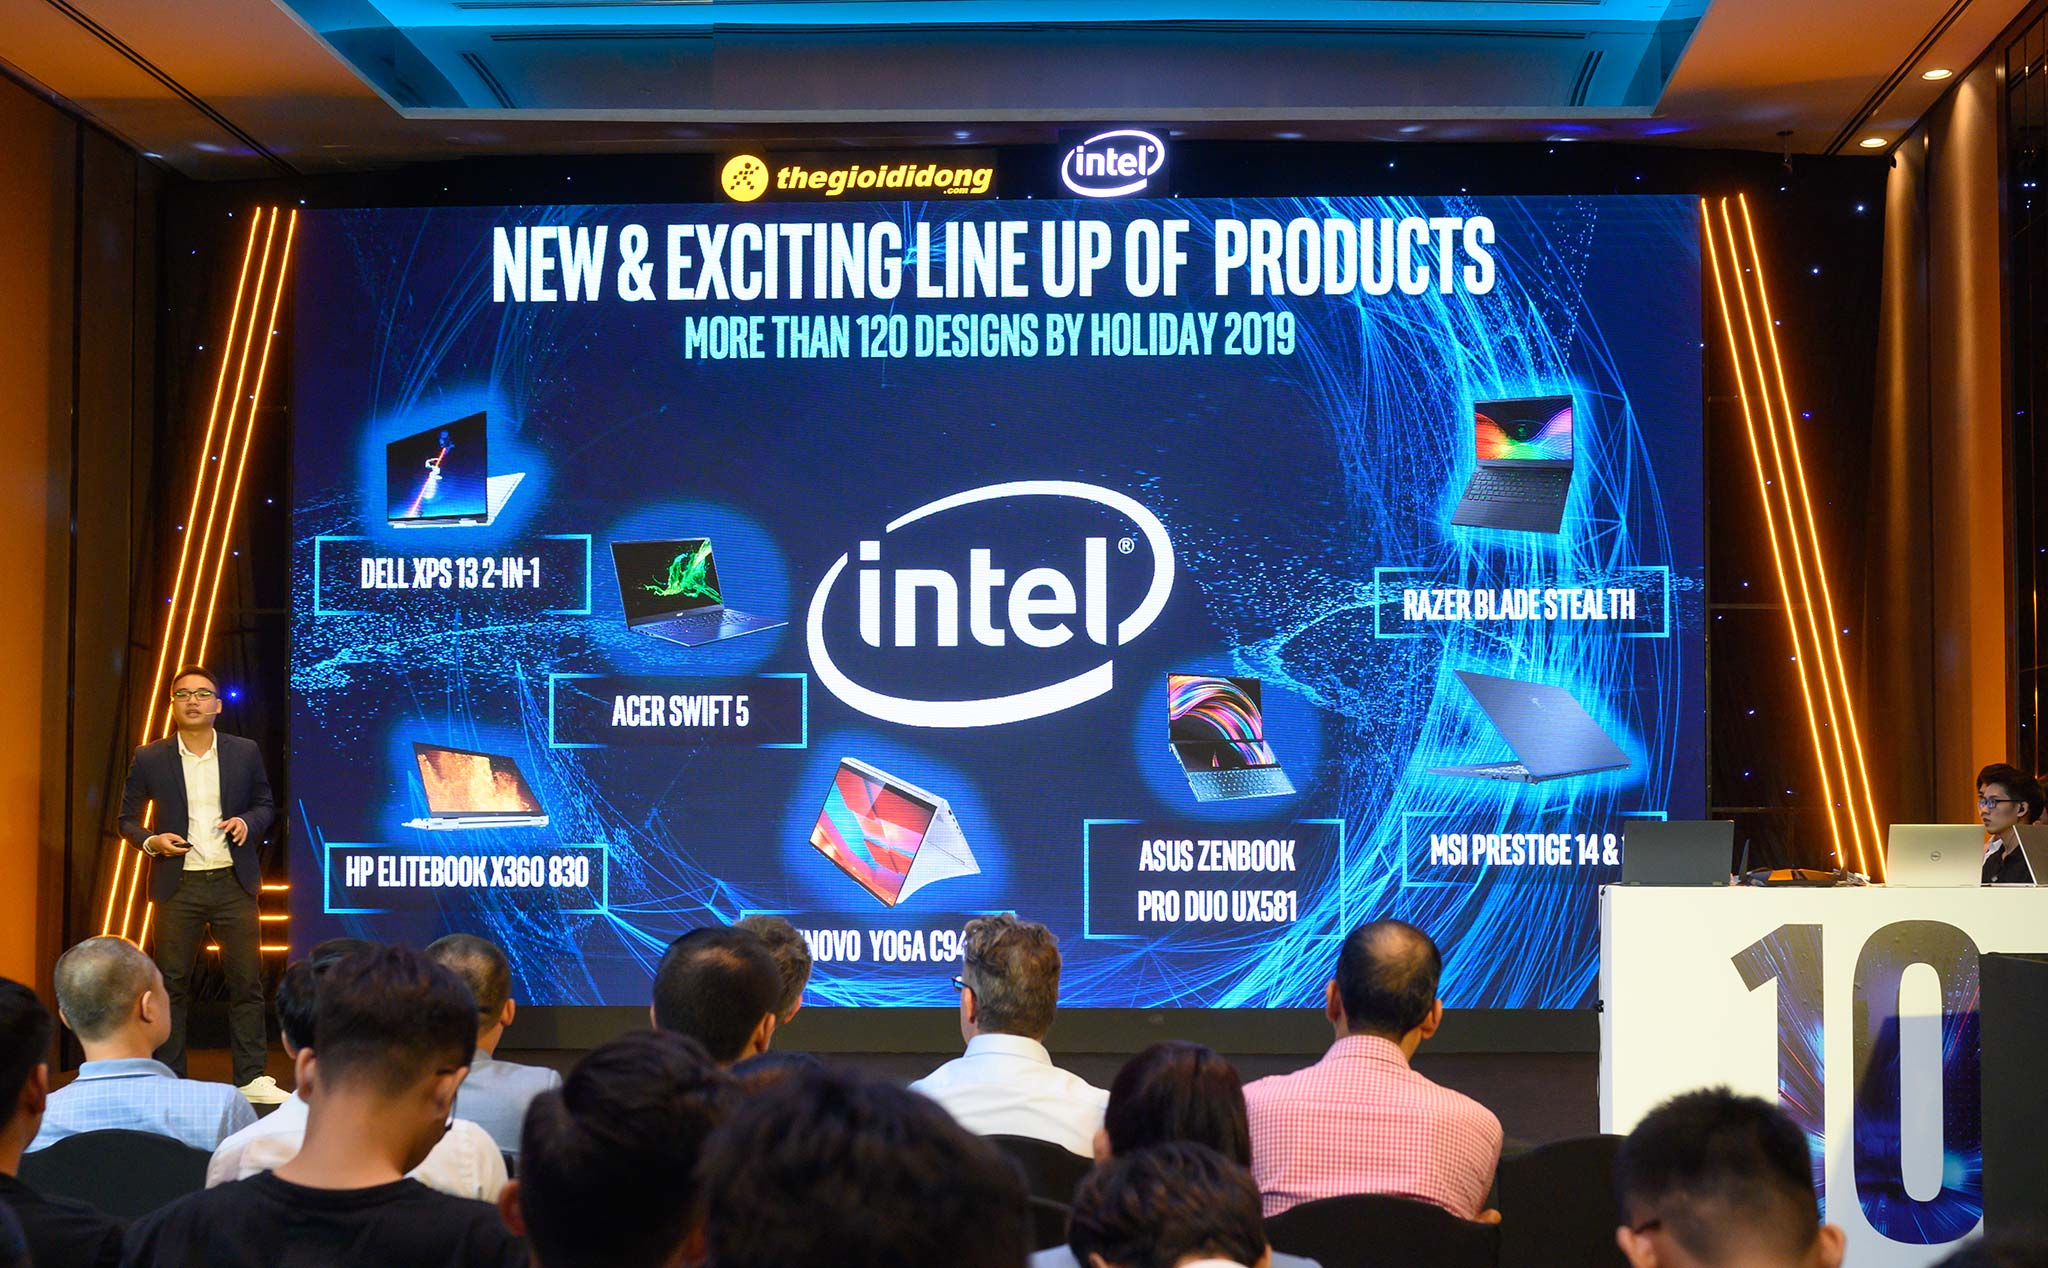 Intel and Mobile World present the series of laptops using the 10th generation Intel Core platform